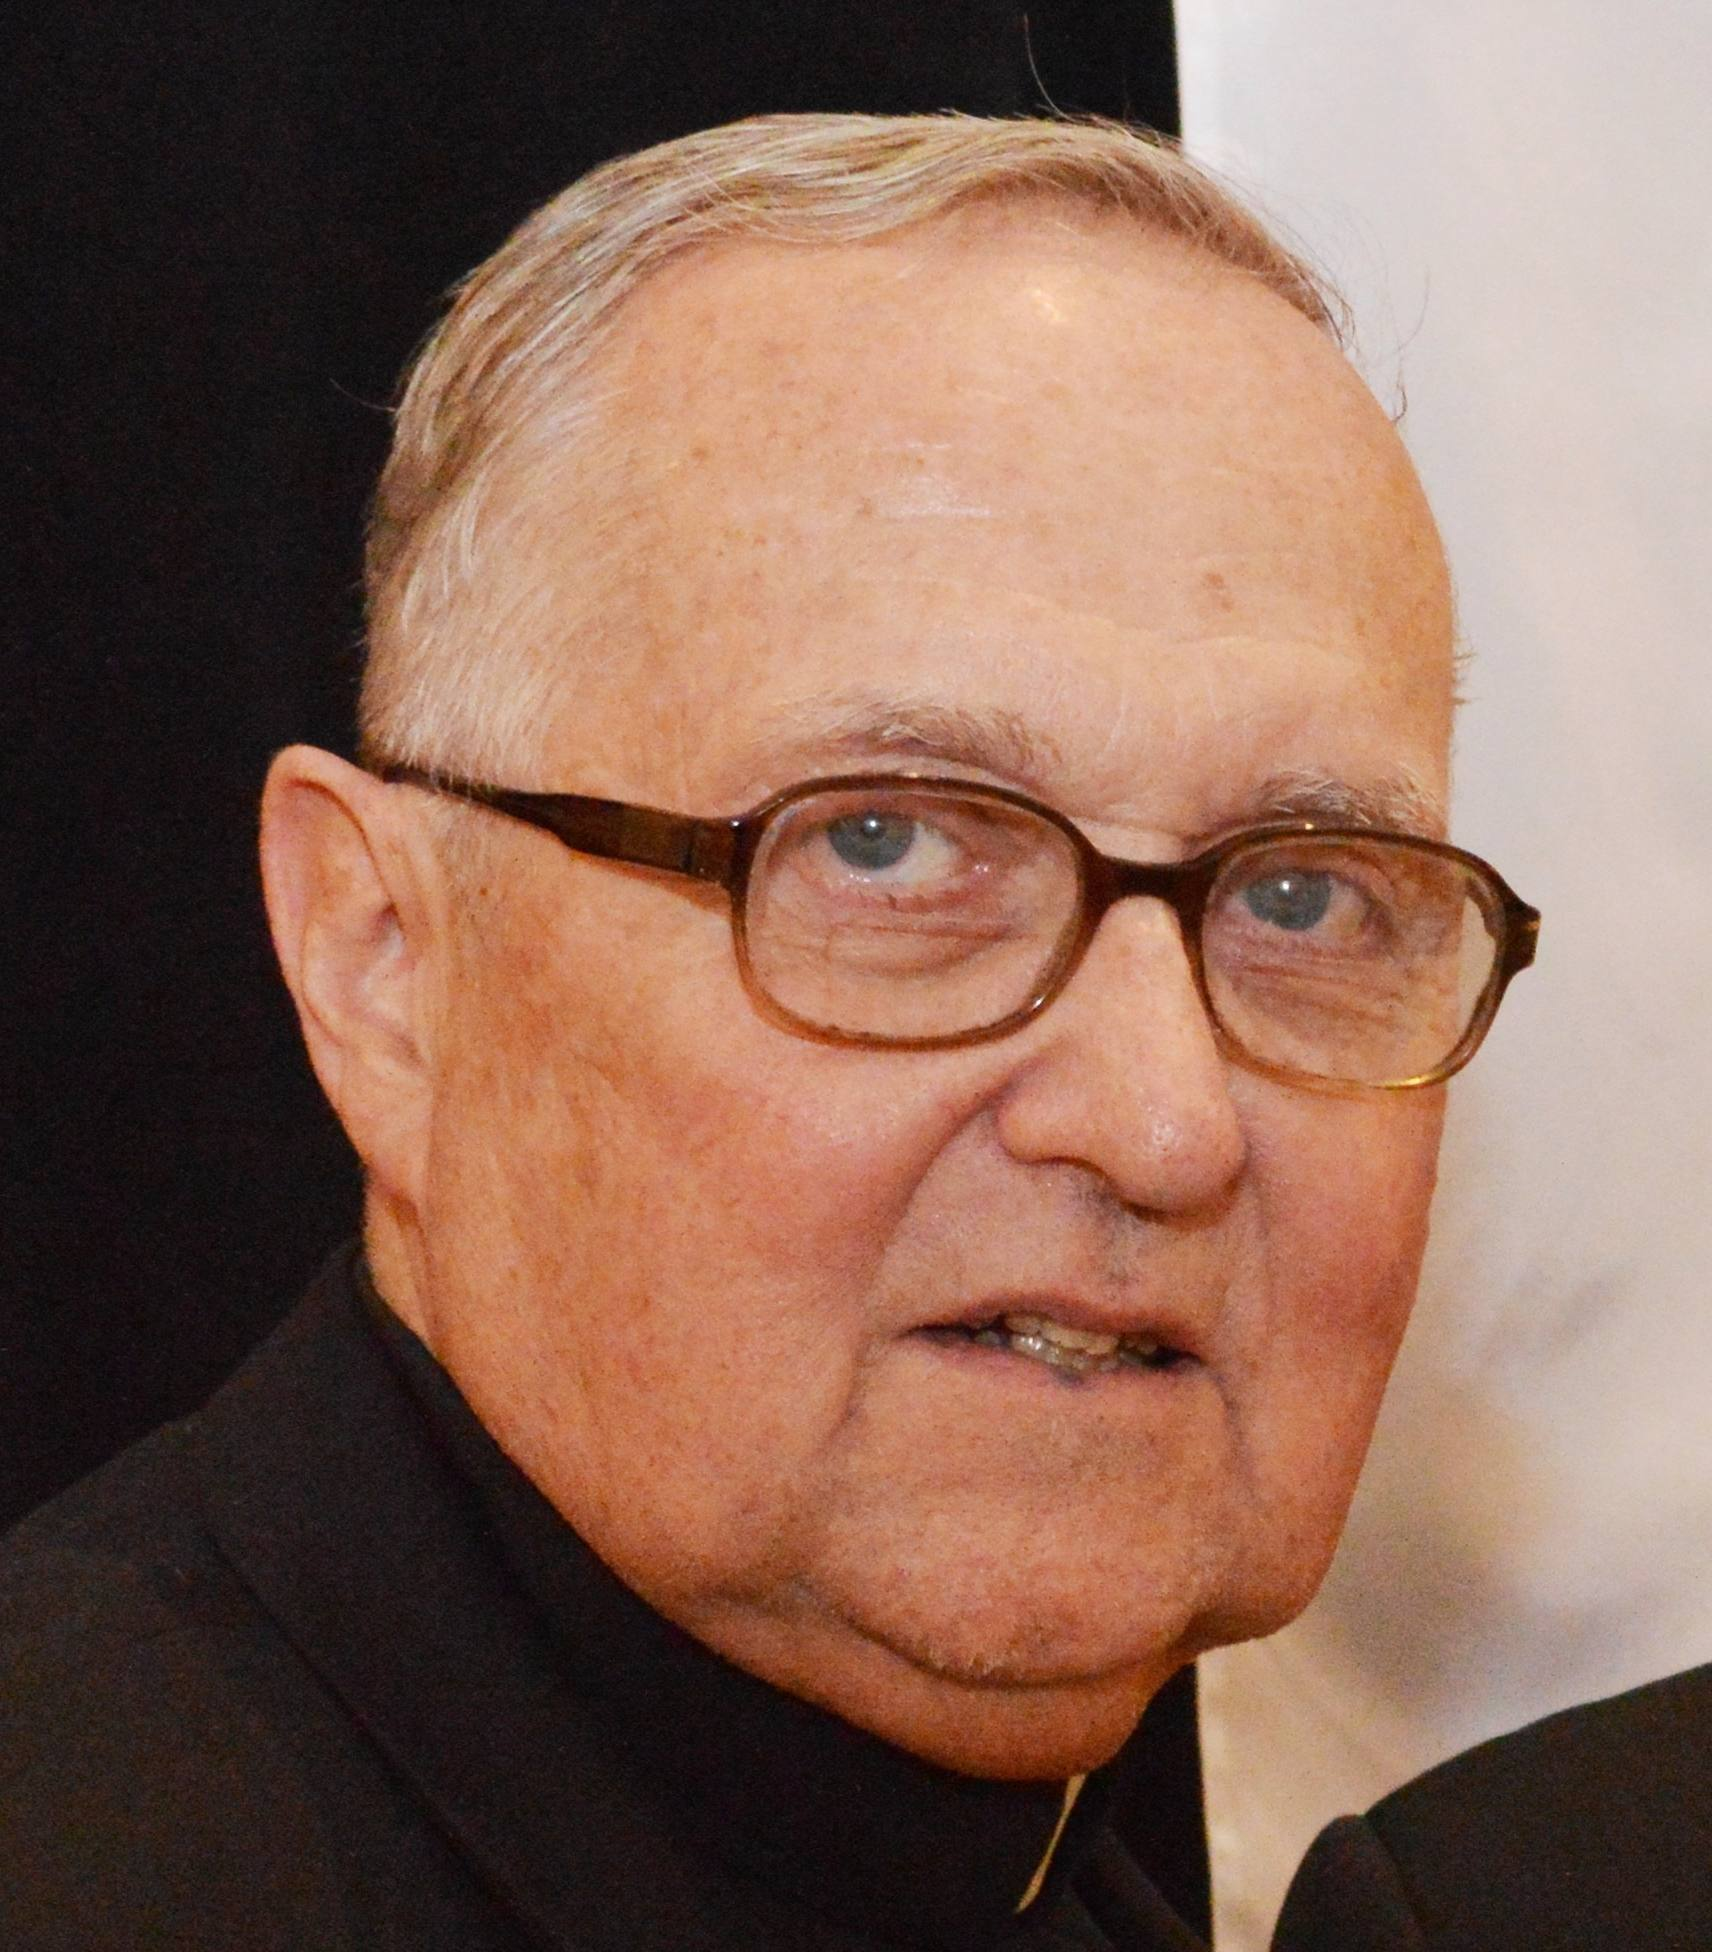 Fr. Carter, HOPES, 1, Cropped.jpg